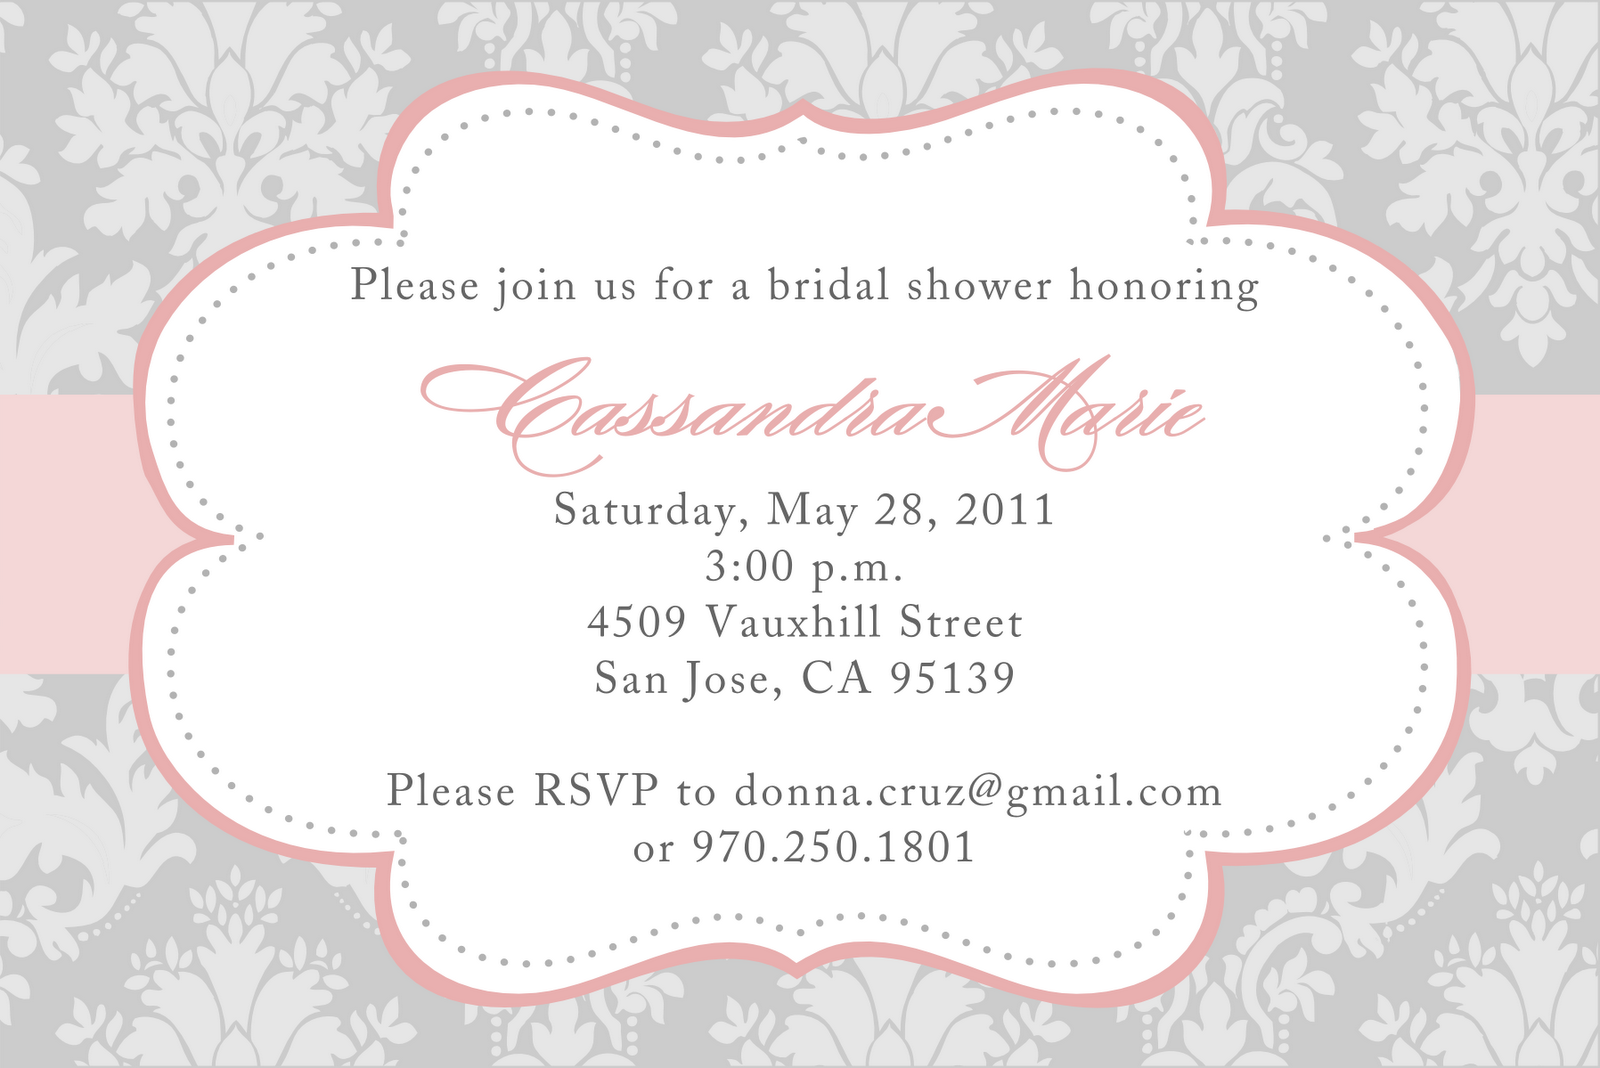 Wedding Shower Invitation Templates Free Make Your Own